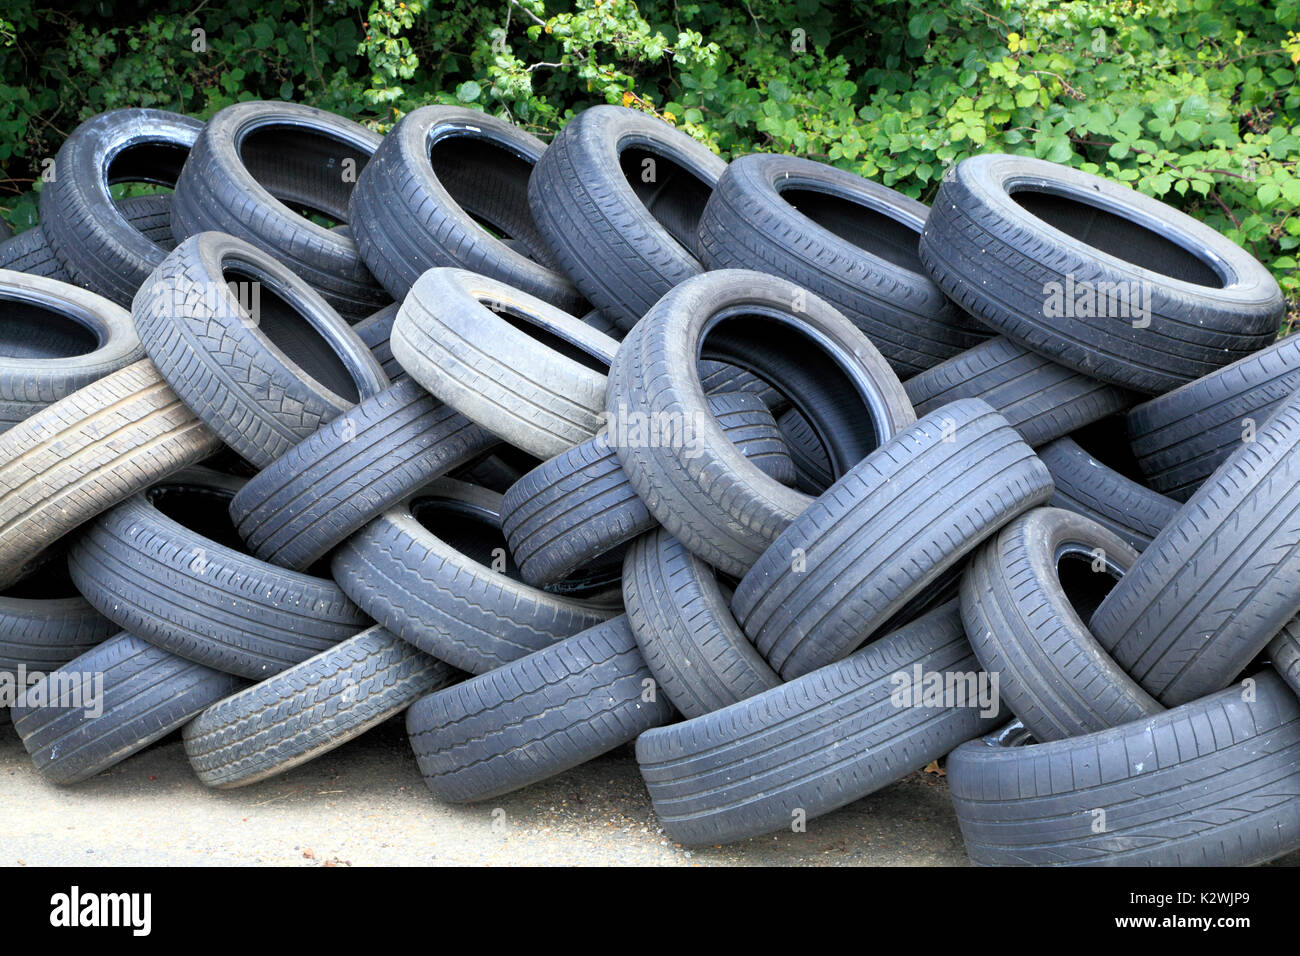 worn out, old, motor car tyres, for recycling, recycle, rubbertyre, Engfland, UK - Stock Image